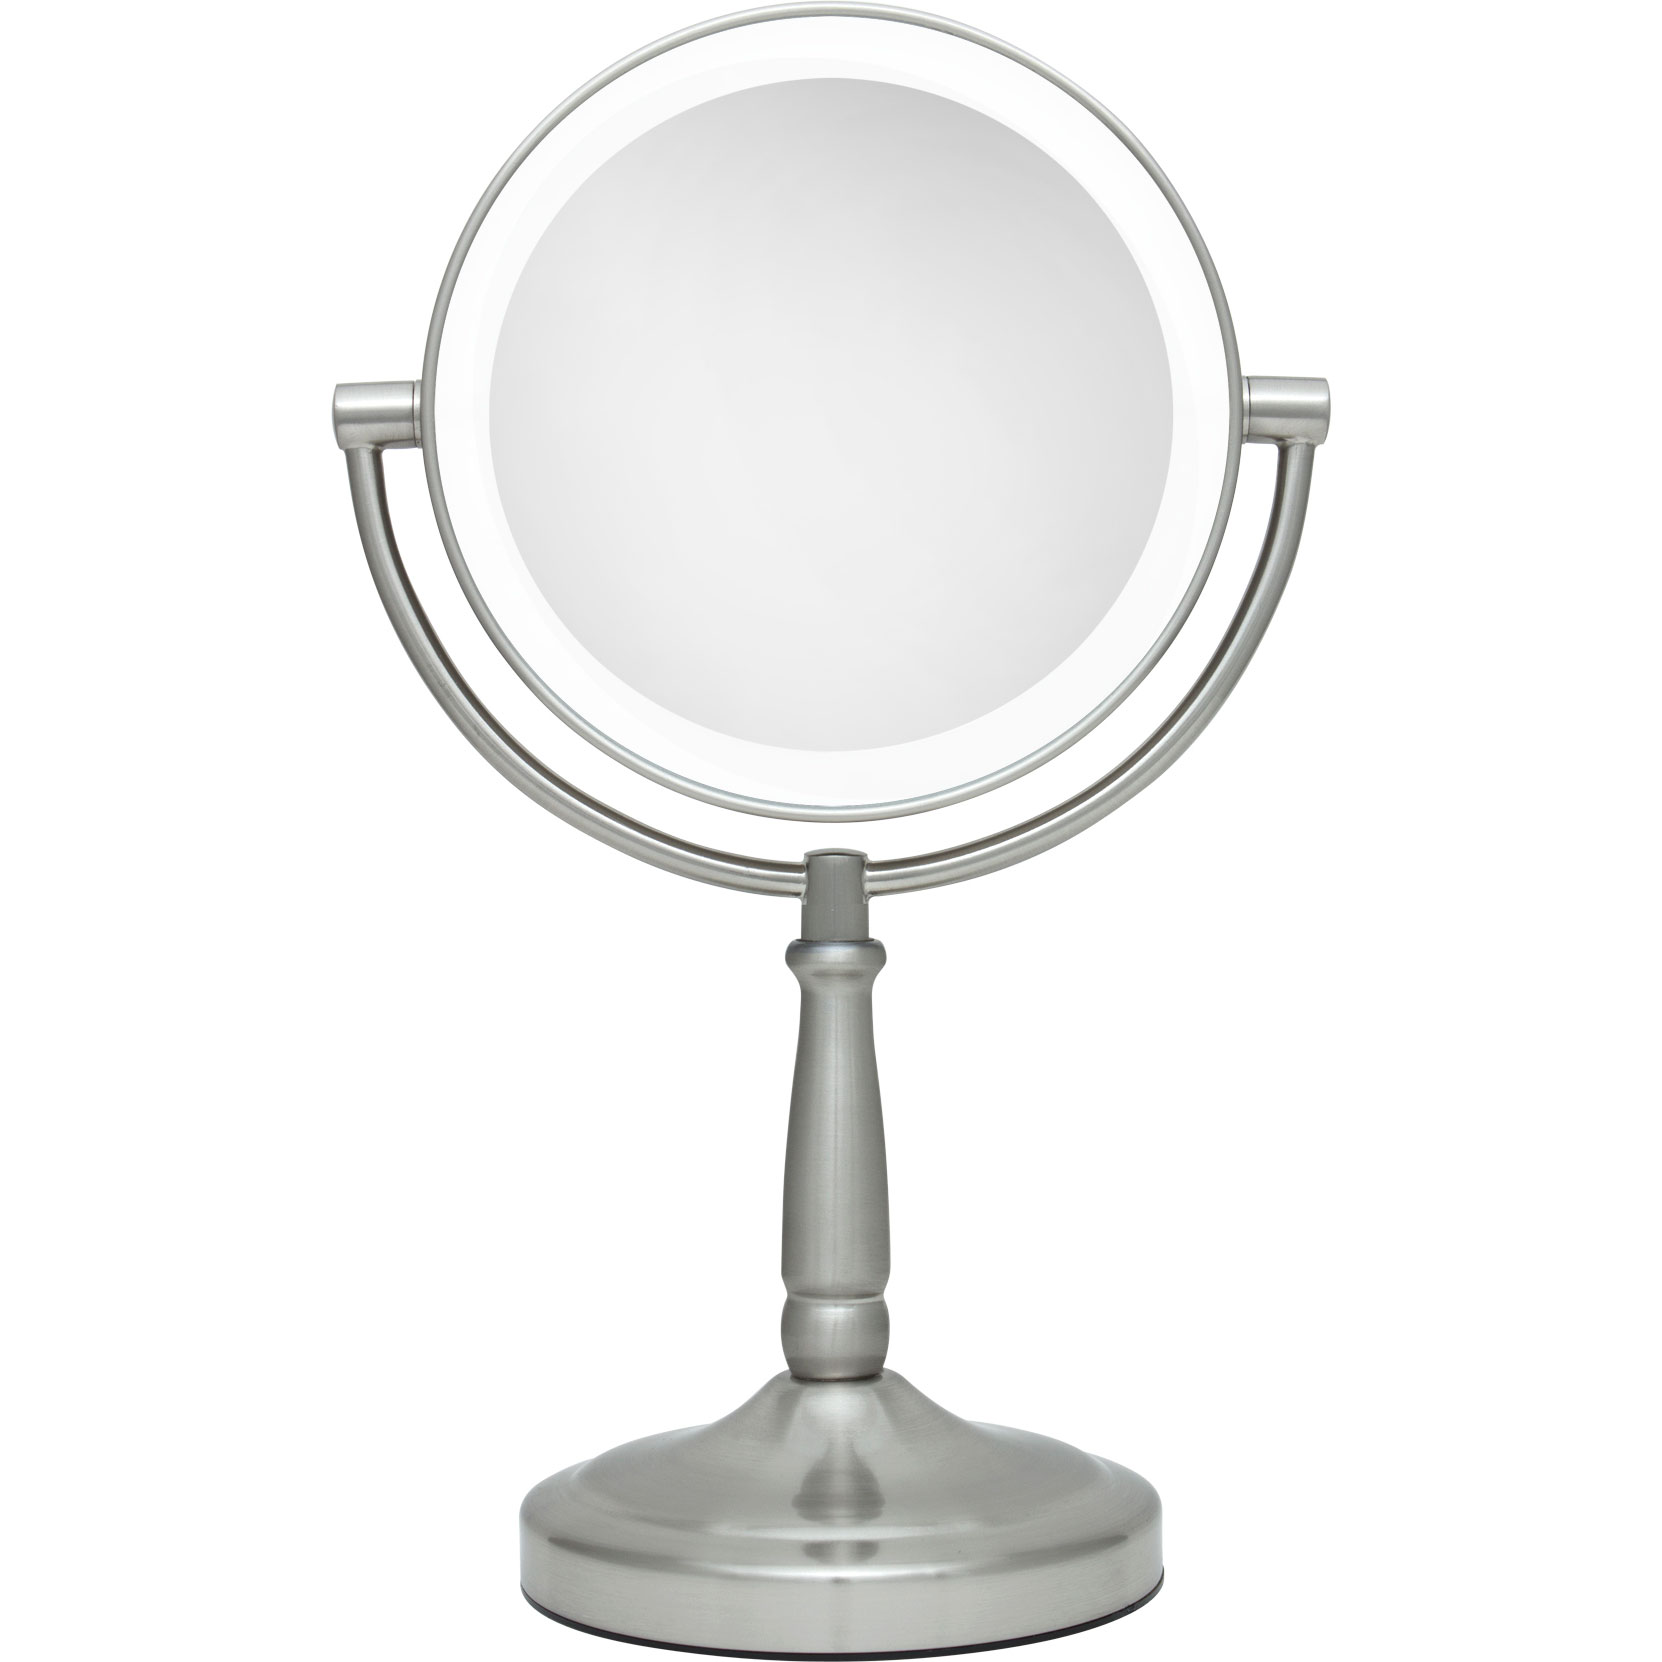 Vanity Mirror Led Light Bulbs : 5x/1x Cordless Dual Sided LED Light Vanity Mirror by Zadro LEDV45